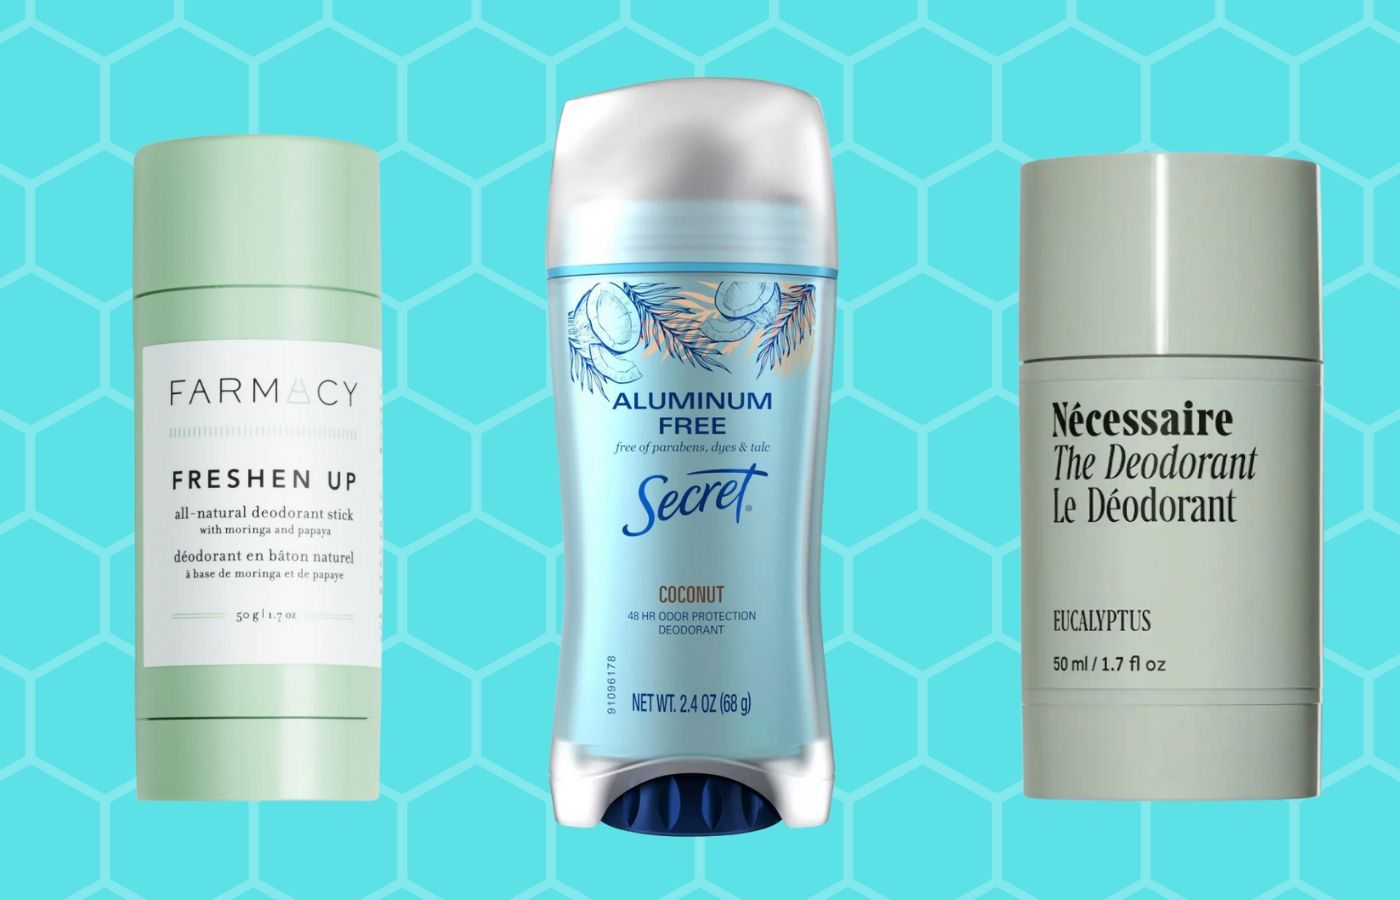 5 natural deodorants to try that actually work